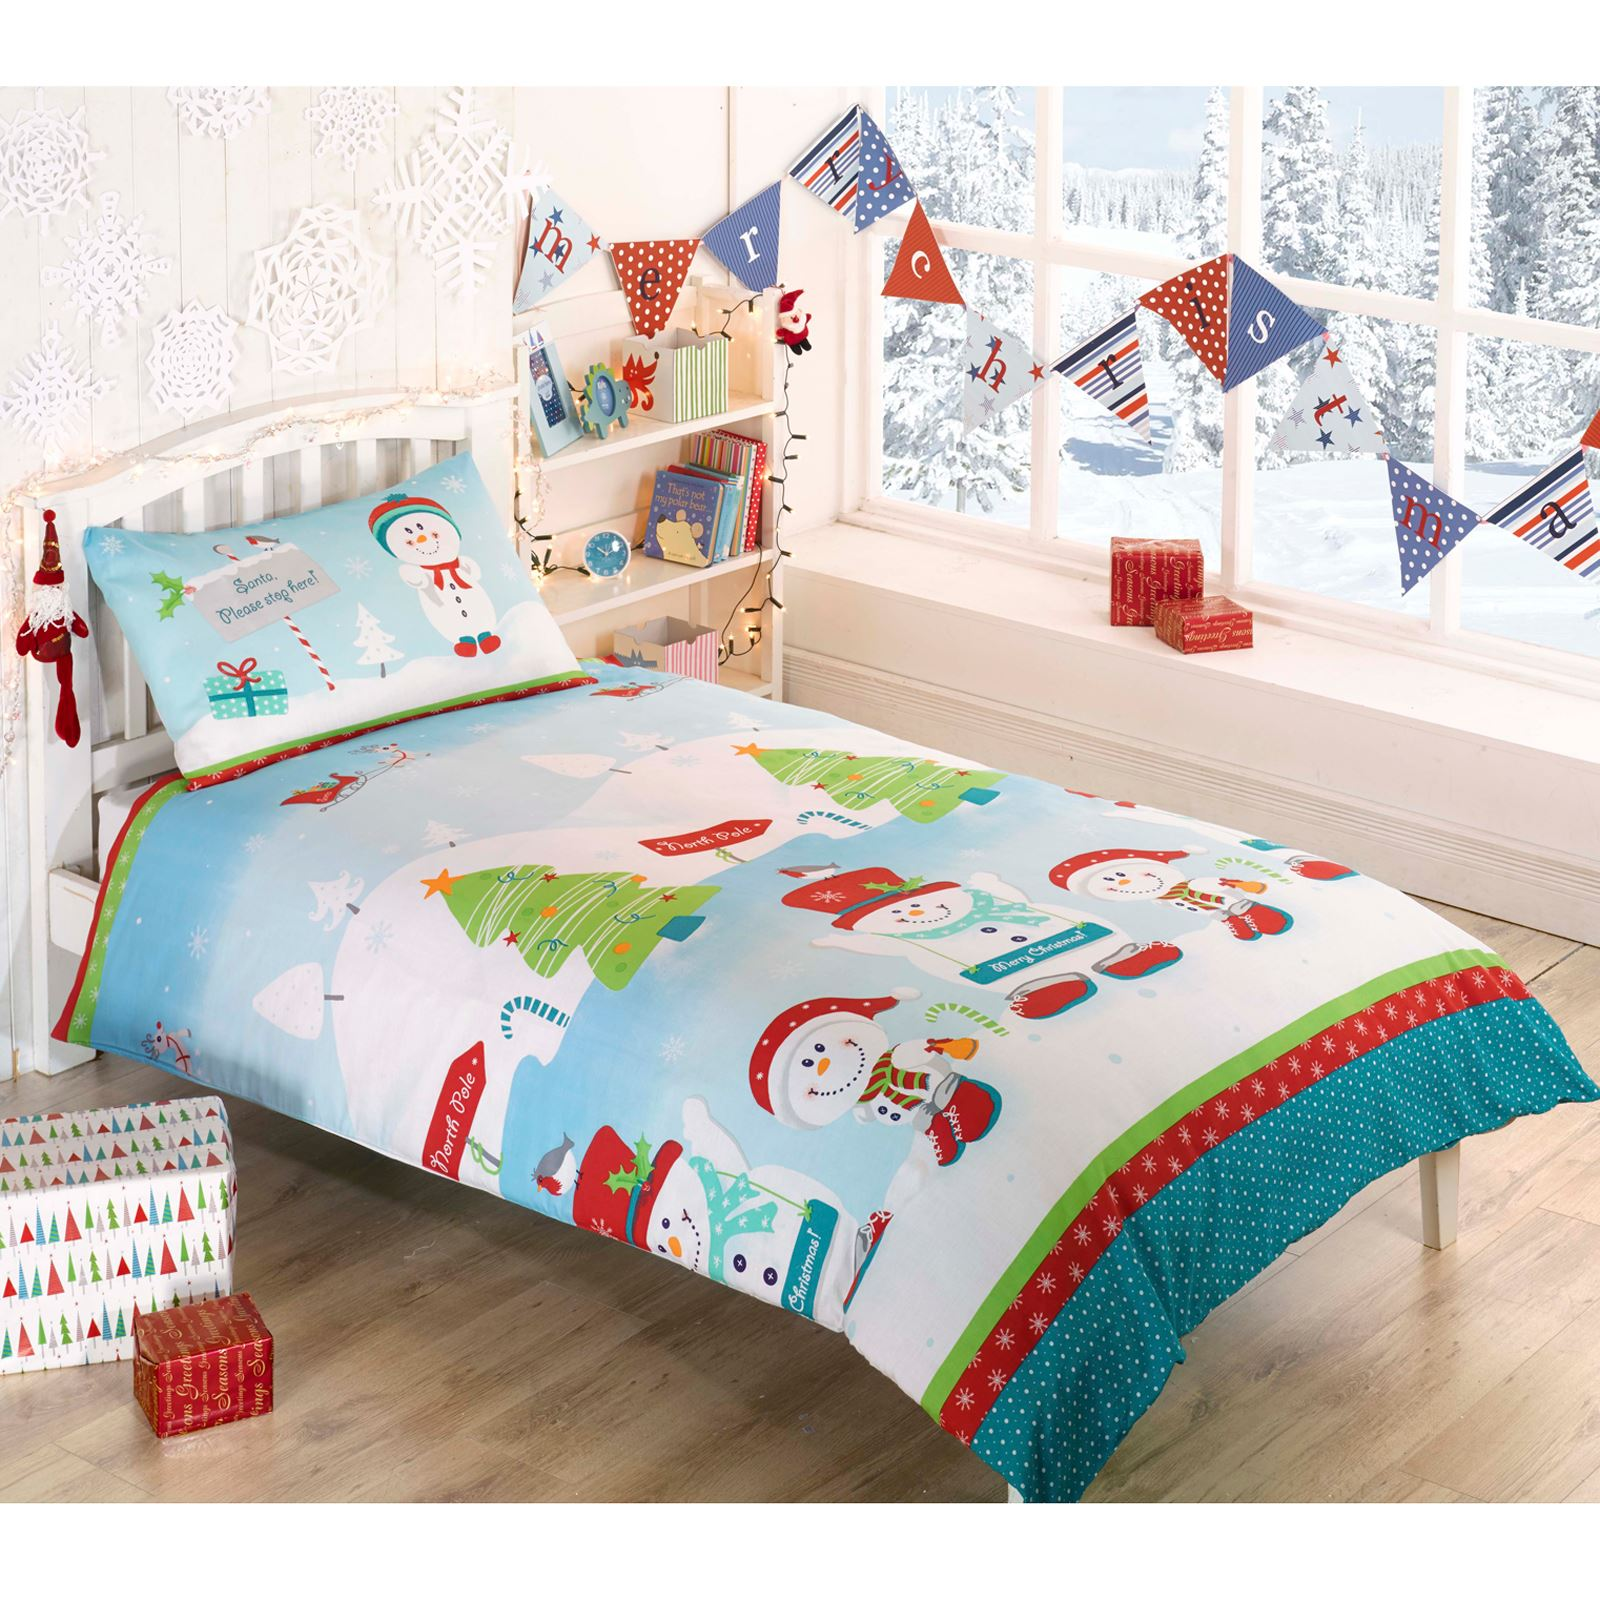 CHRISTMAS DUVET COVERS KIDS BEDDING SANTA REINDEER - JUNIOR SINGLE ...